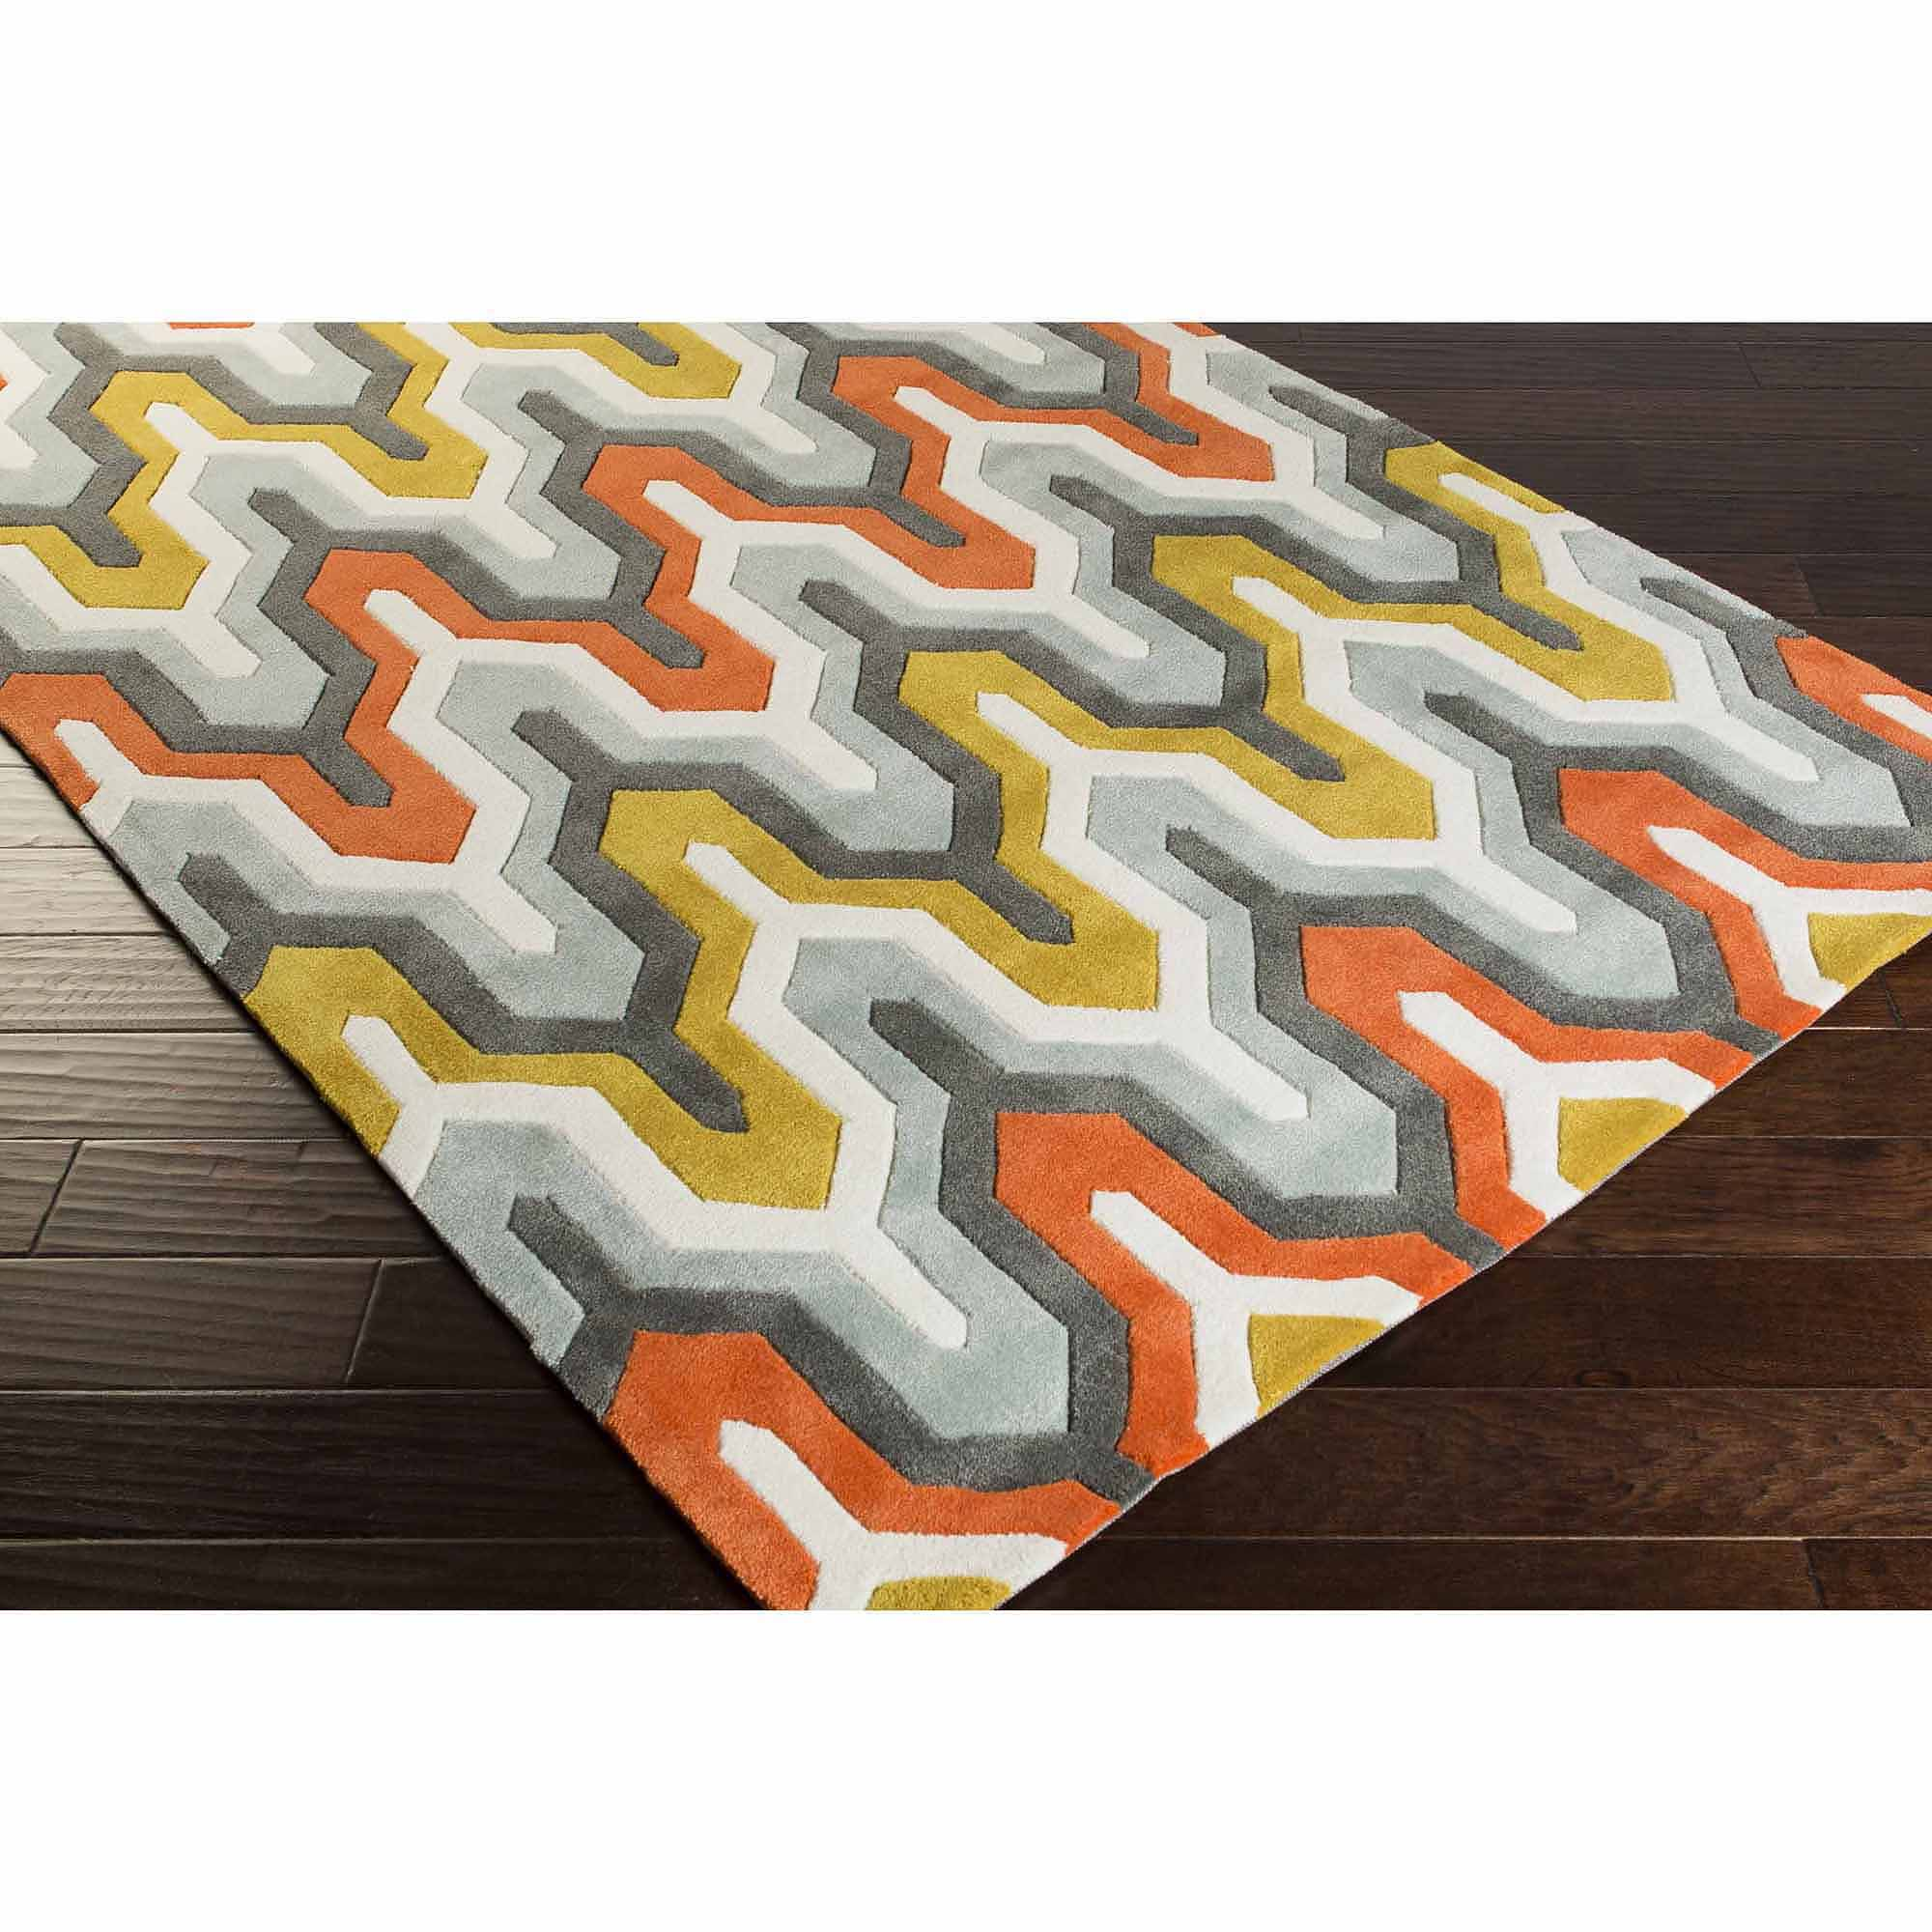 Art of Knot Orleans Hand Tufted Plush Geometric Area Rug, Poppy